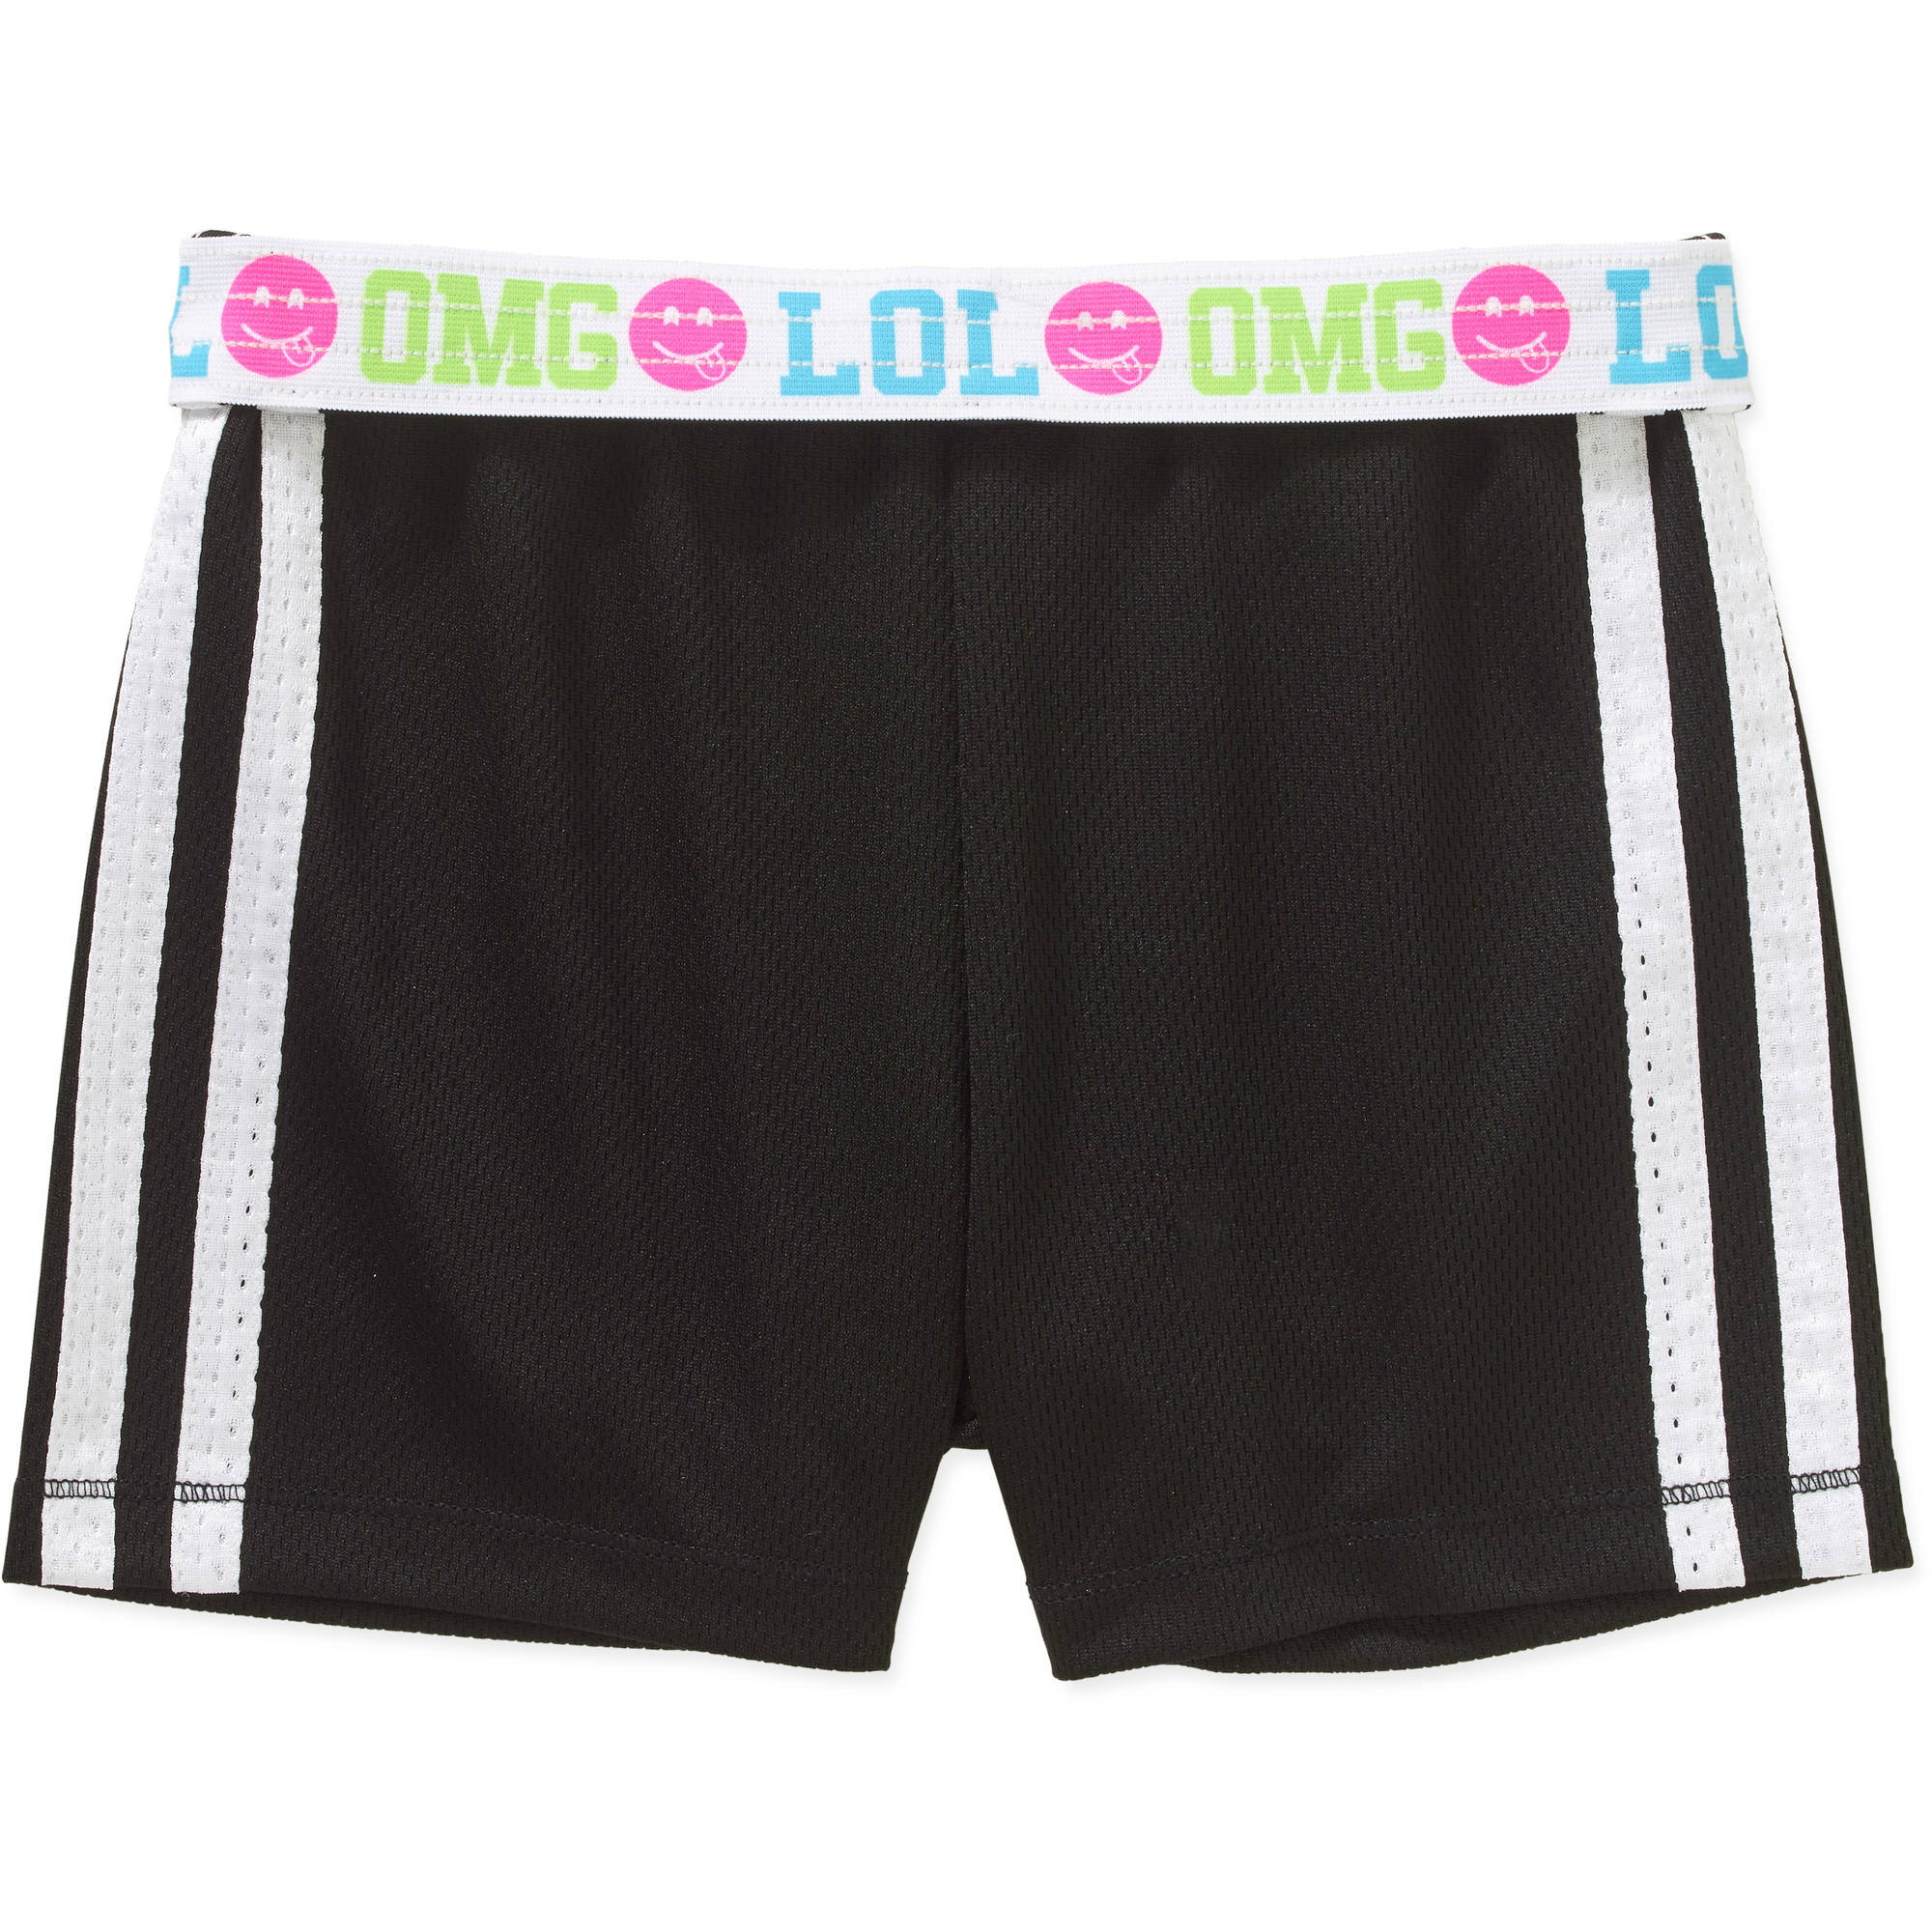 Girls' Faded Glory Solid Mesh Shorts